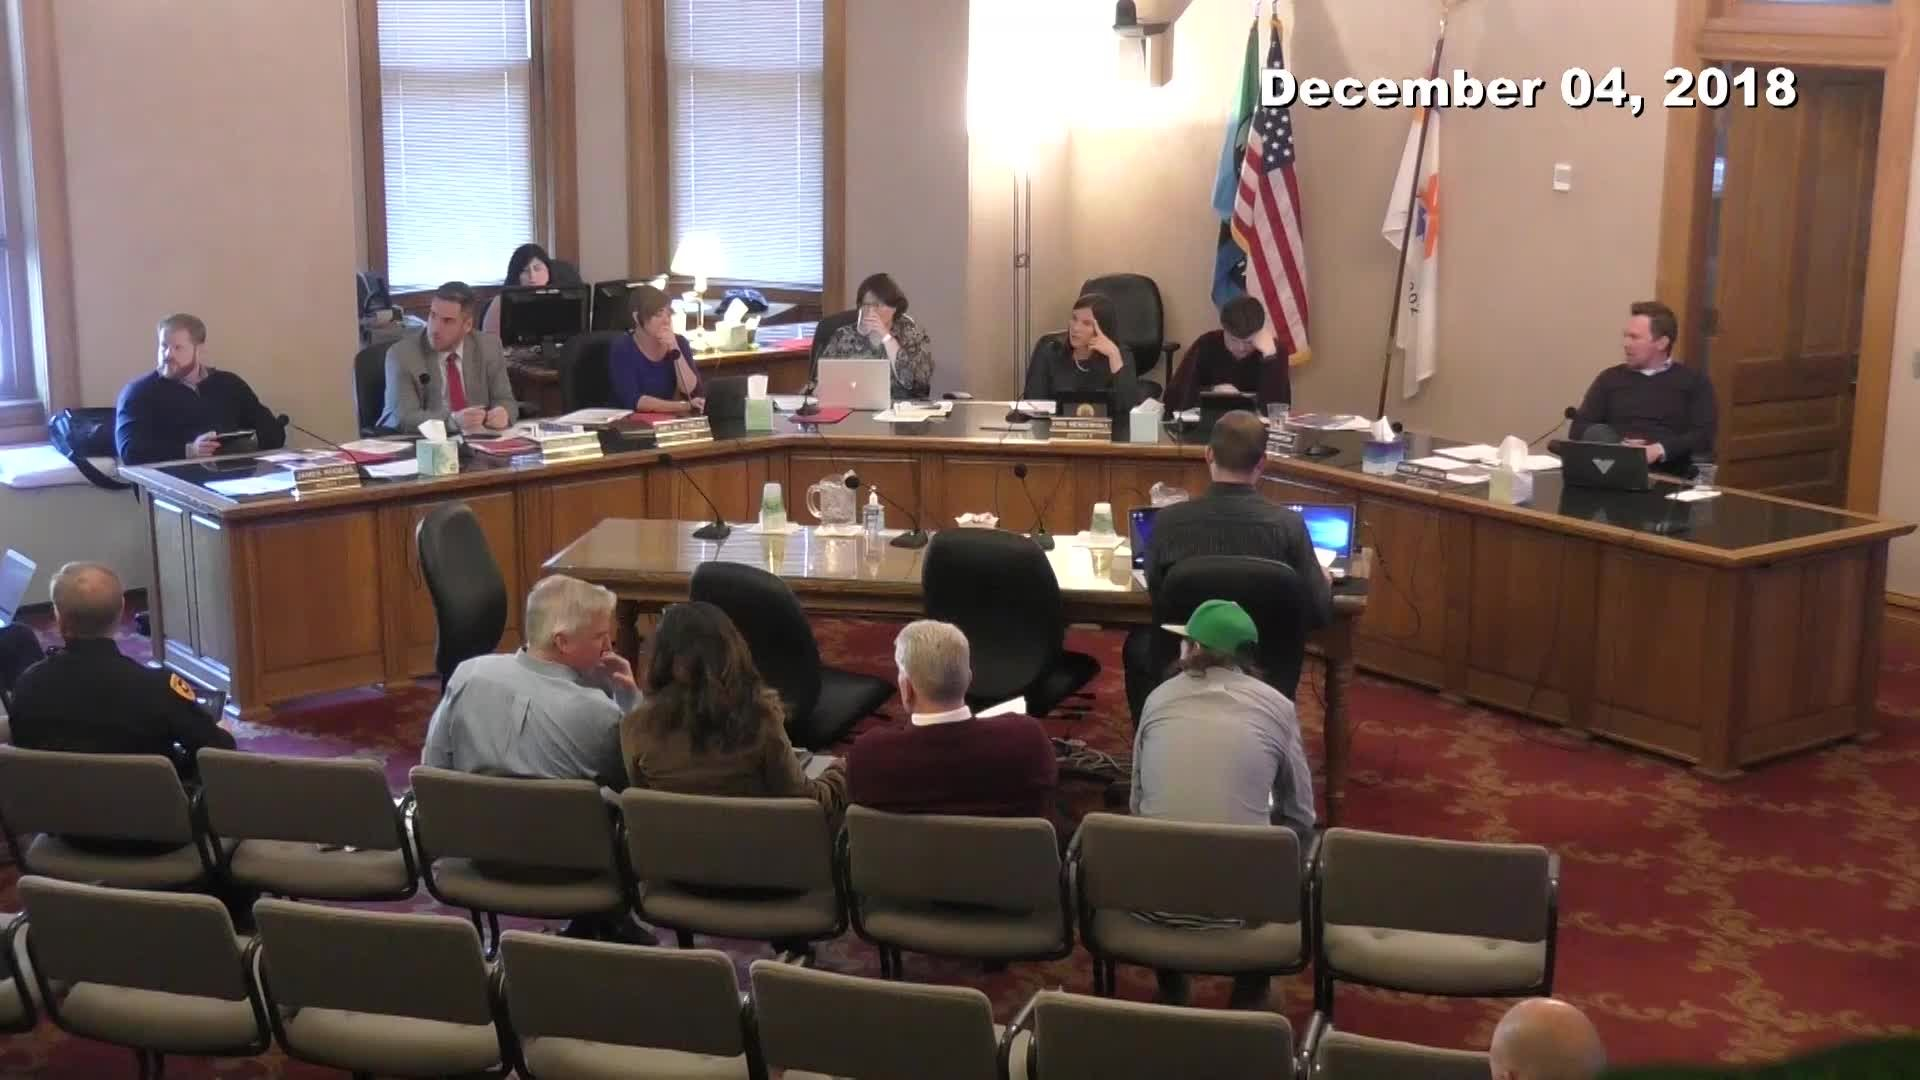 City Council Work Session - 12/04/2018